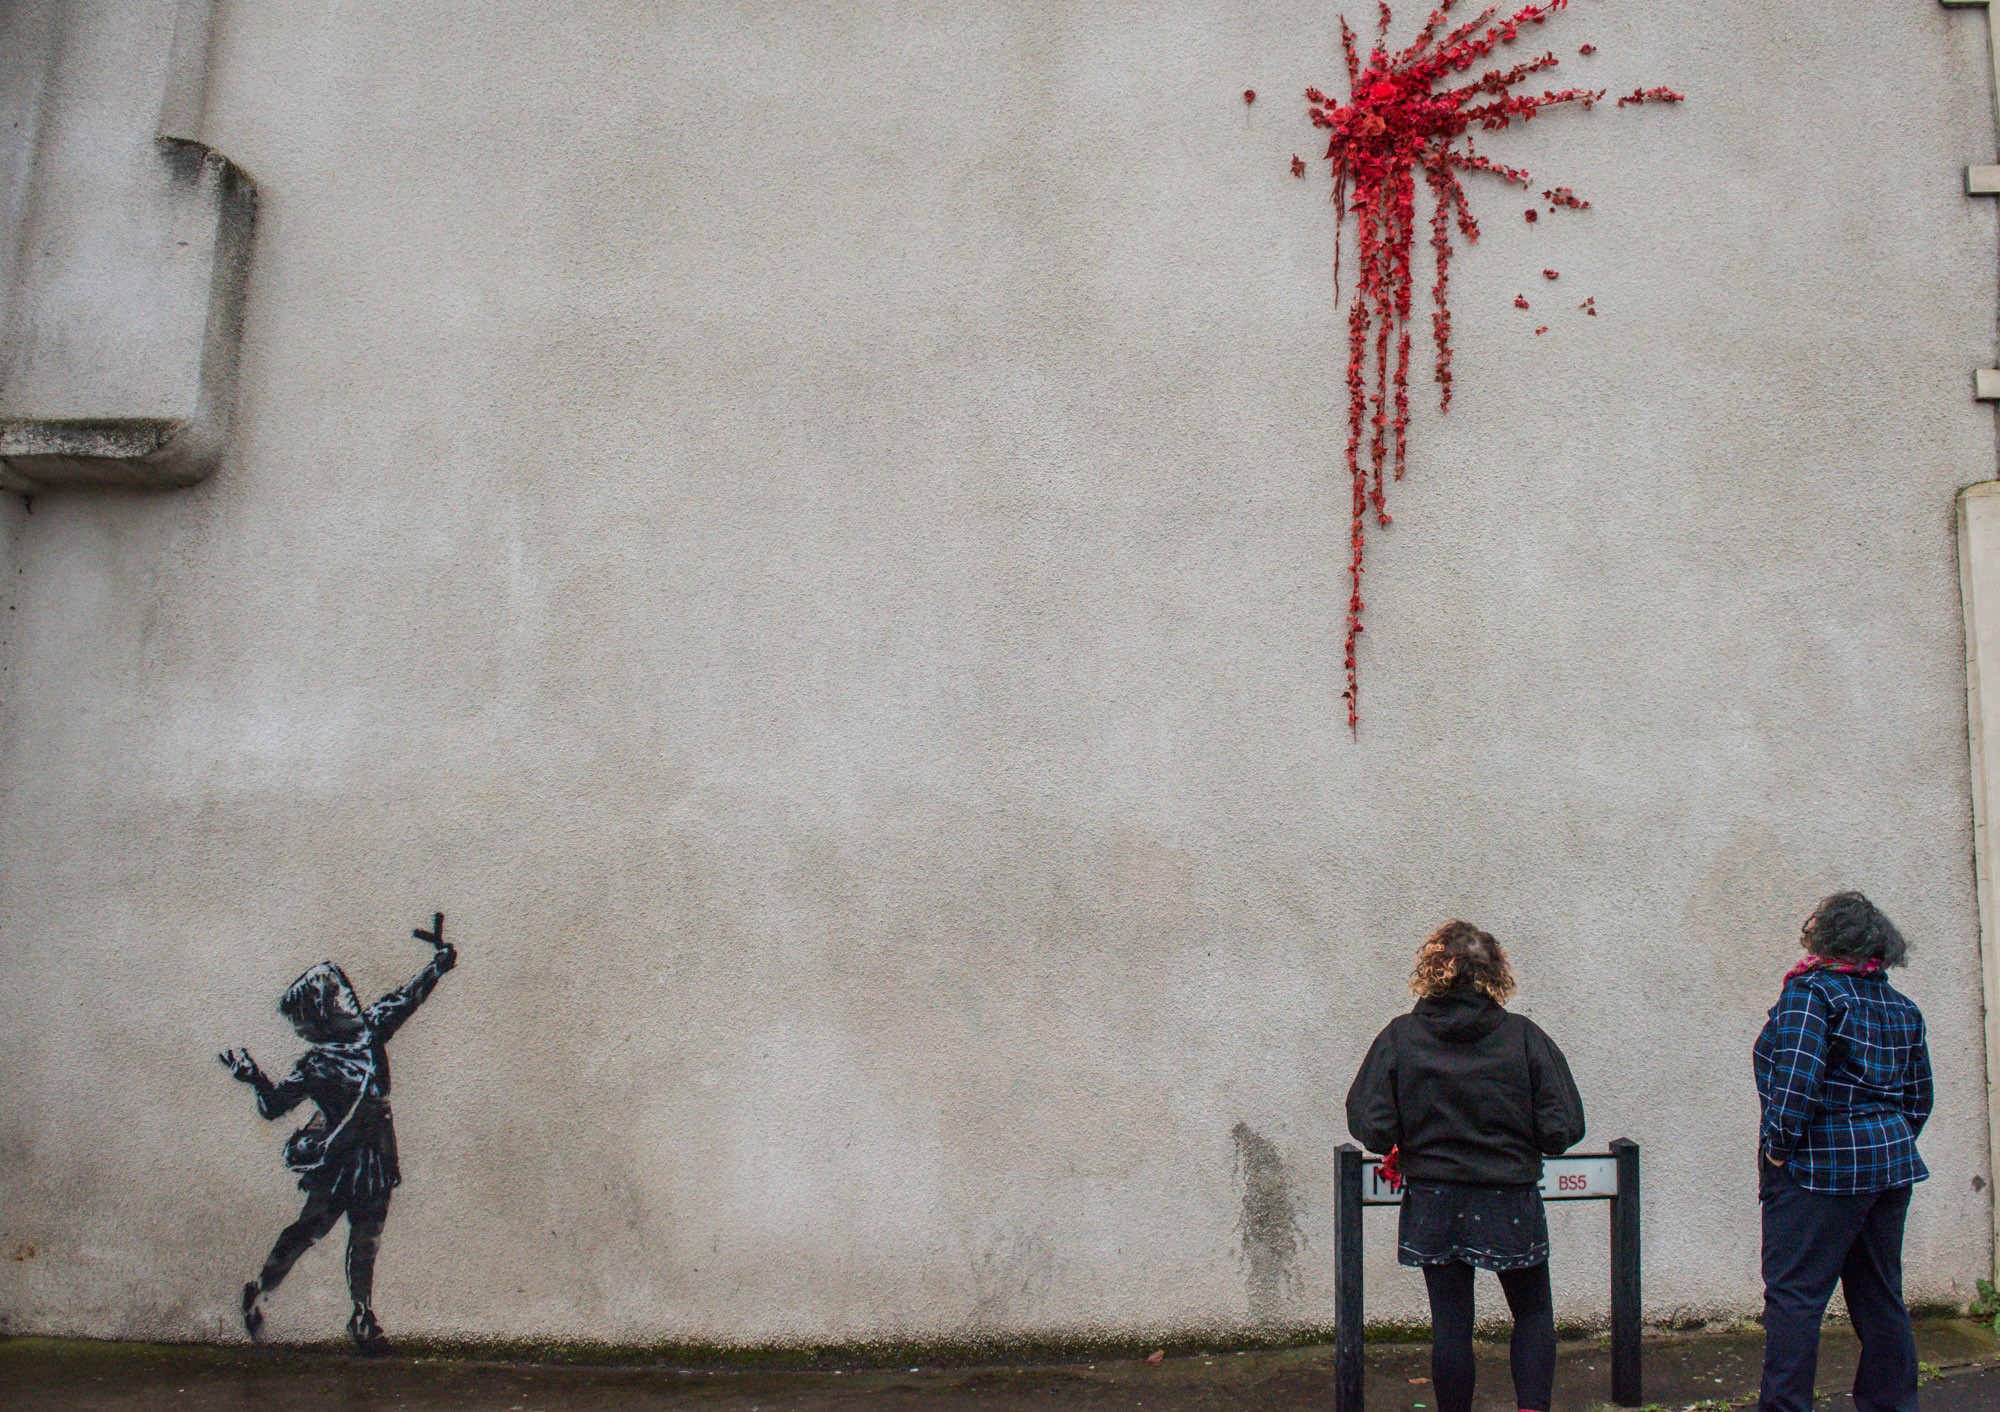 In Bristol, Bansky creates catapulted roses mural for Valentine's Day